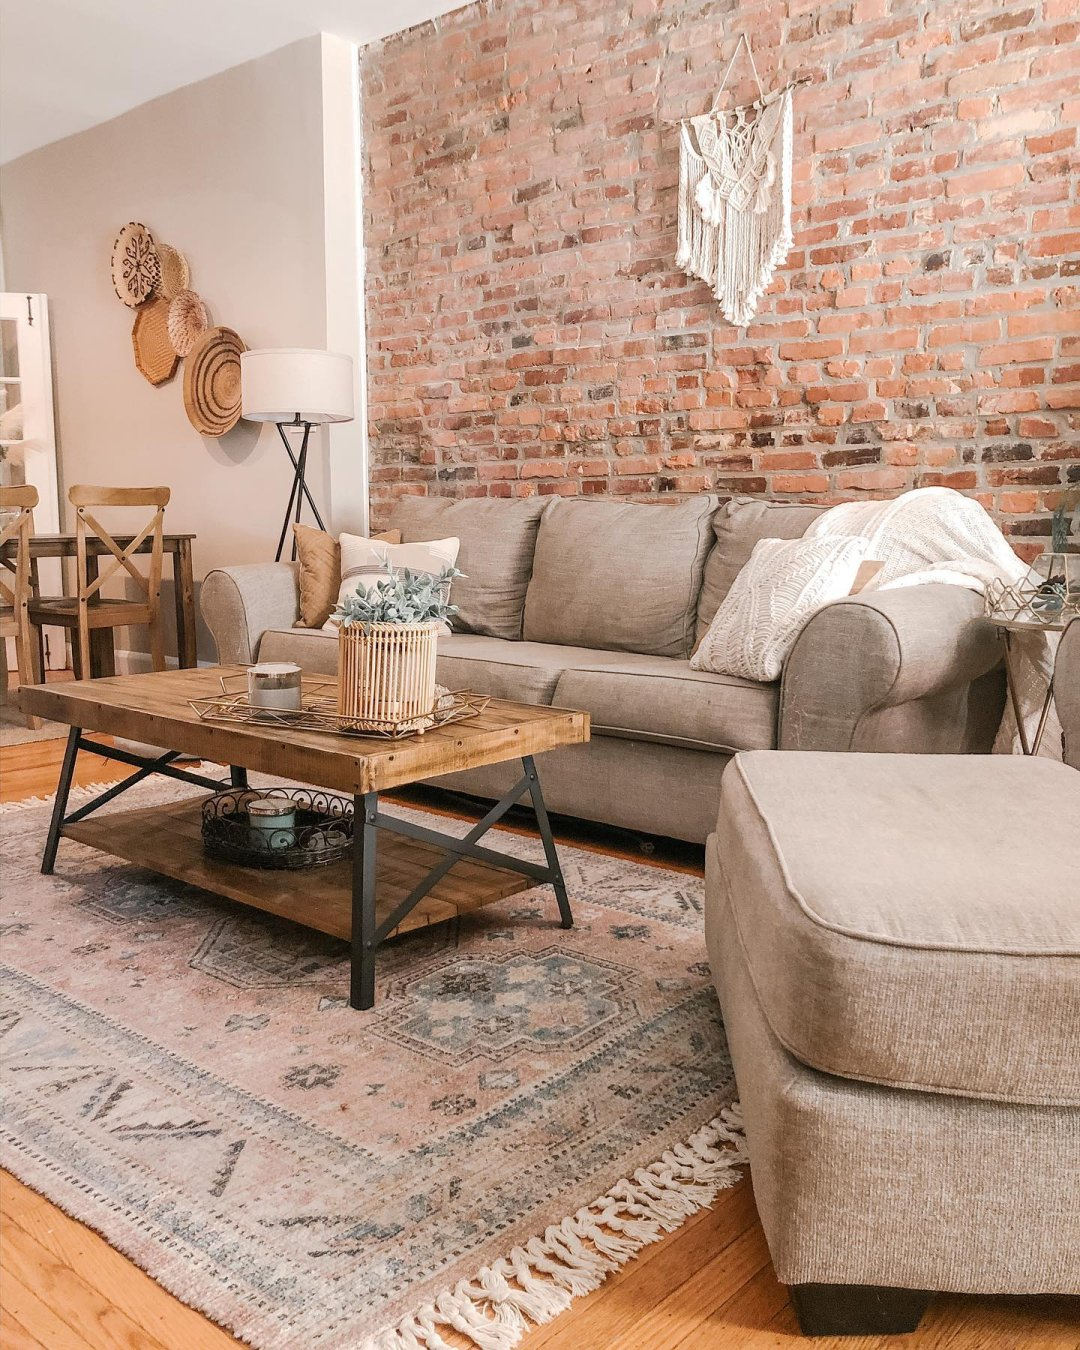 Curated image with Belcampo Sofa, Jute, Belcampo Ottoman, Jute